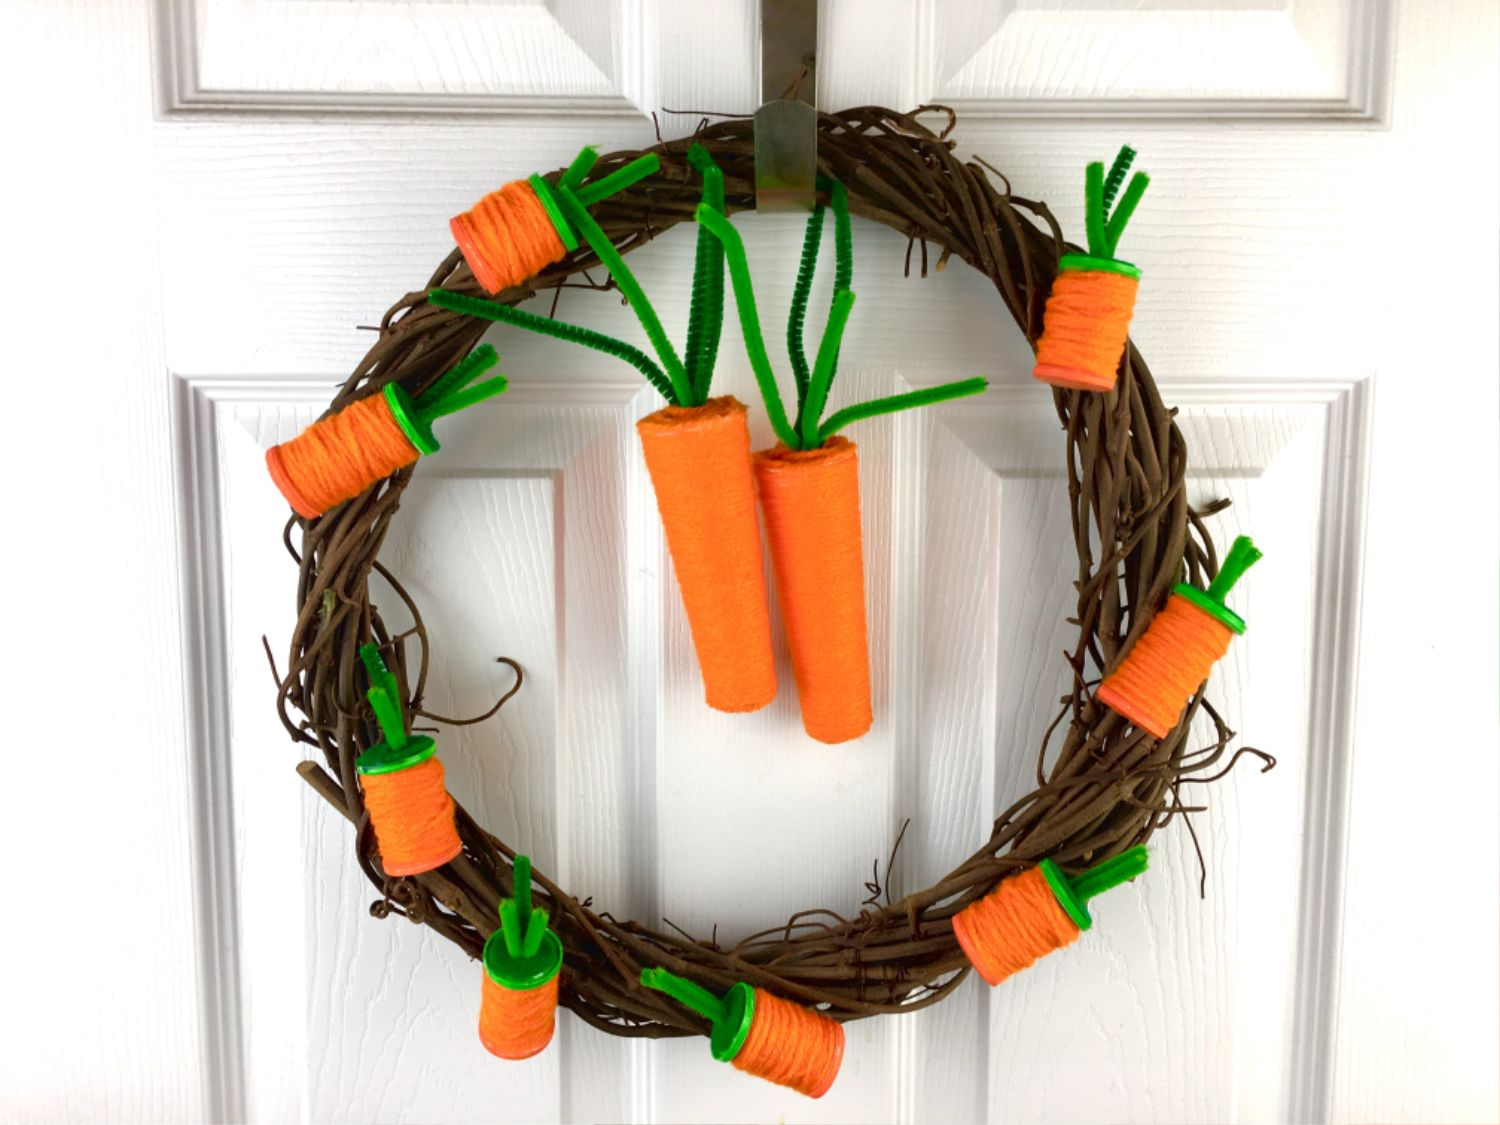 Baby Carrot Wreath Tutorial for Spring